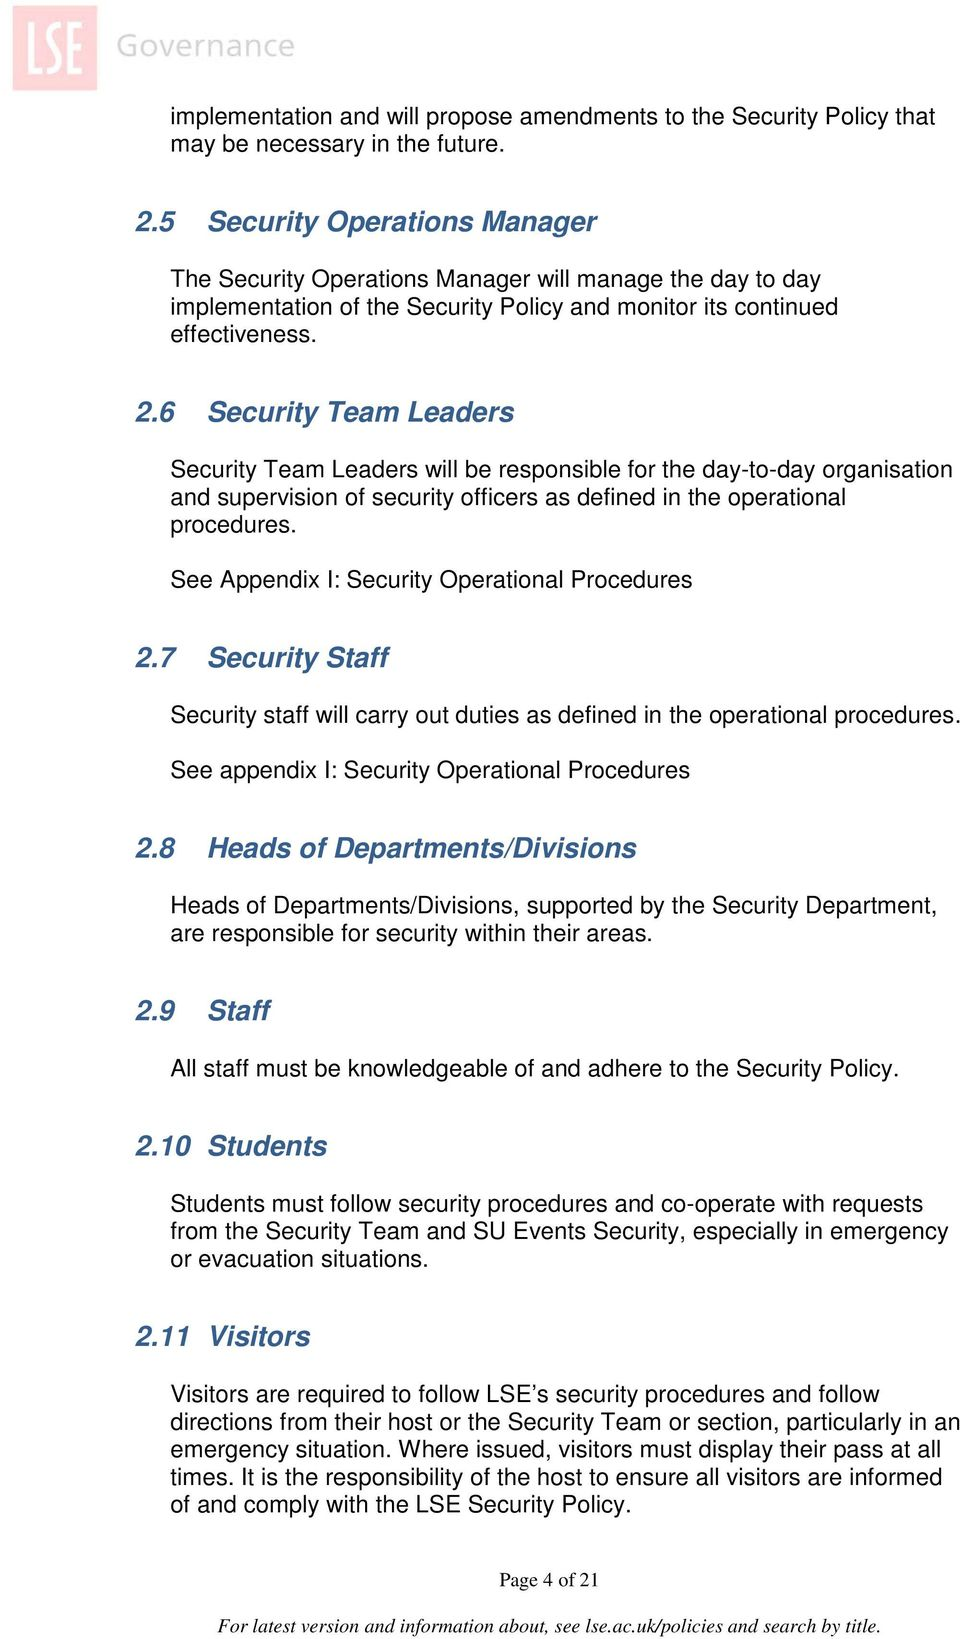 6 Security Team Leaders Security Team Leaders will be responsible for the day-to-day organisation and supervision of security officers as defined in the operational procedures.